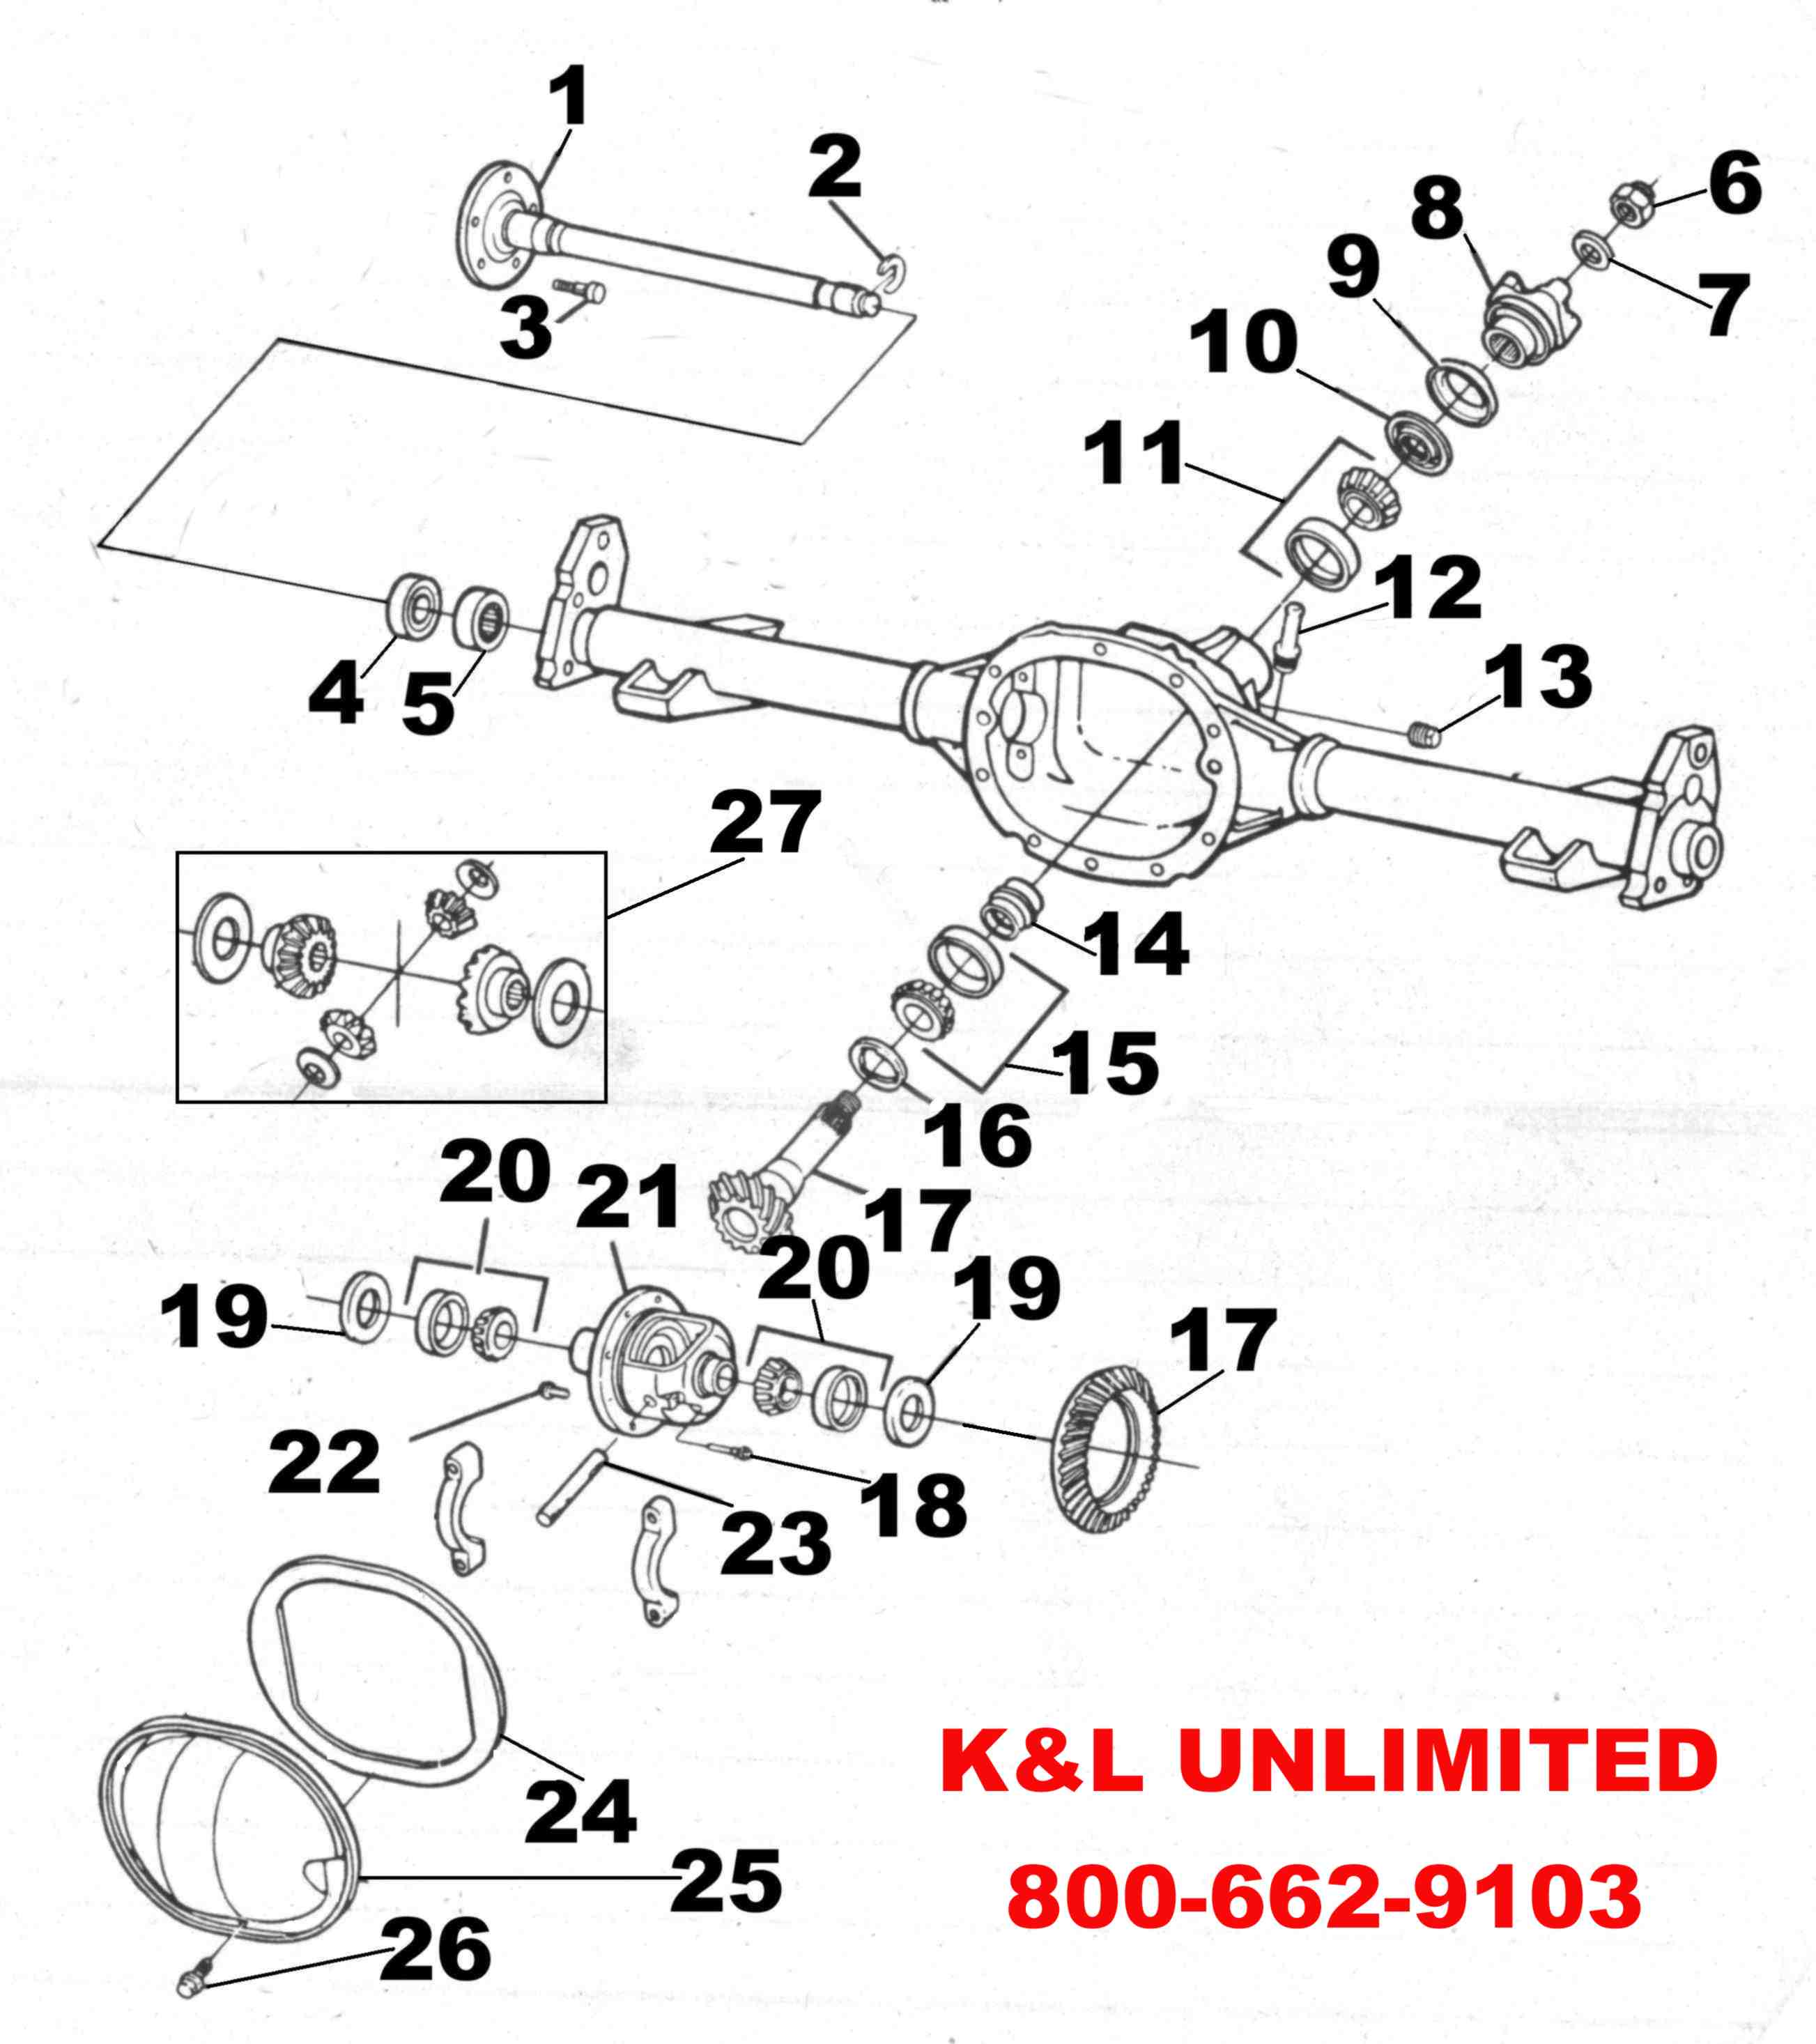 Chevy Truck Rear Axle Diagram   weight-traction wiring diagram library    weight-traction.kivitour.itKivi Tour 2 guida in carrozzina